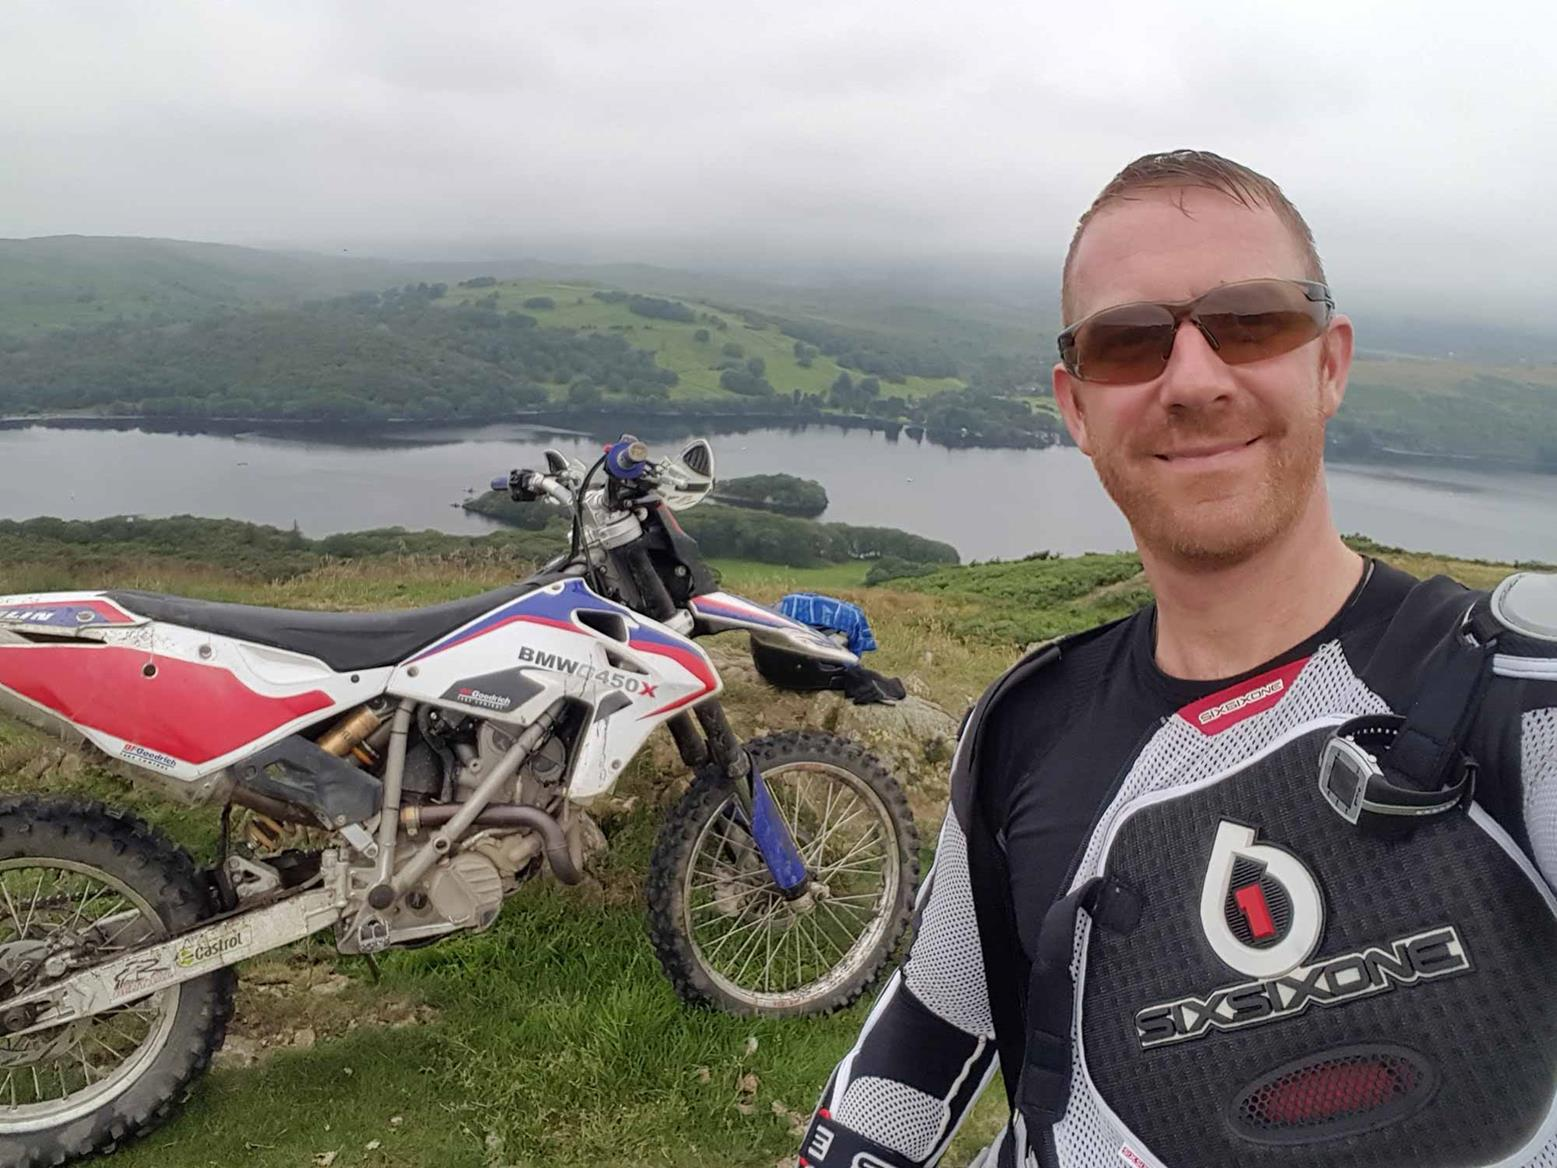 Andy Kent out on his BMW G450X